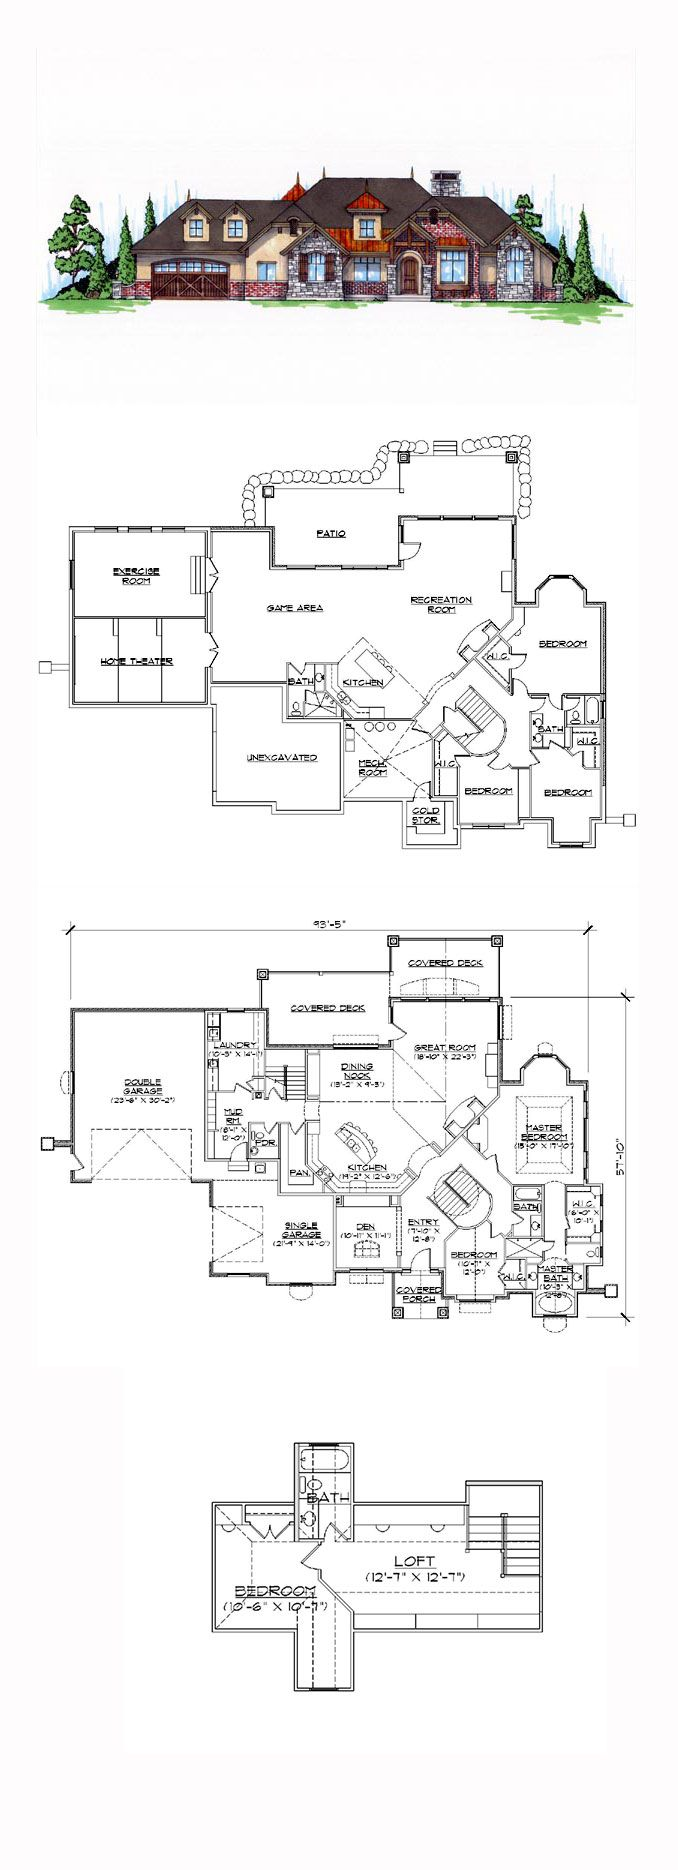 Finished Basement COOL House Plan ID: Chp 45087 | Total Living Area: 3288